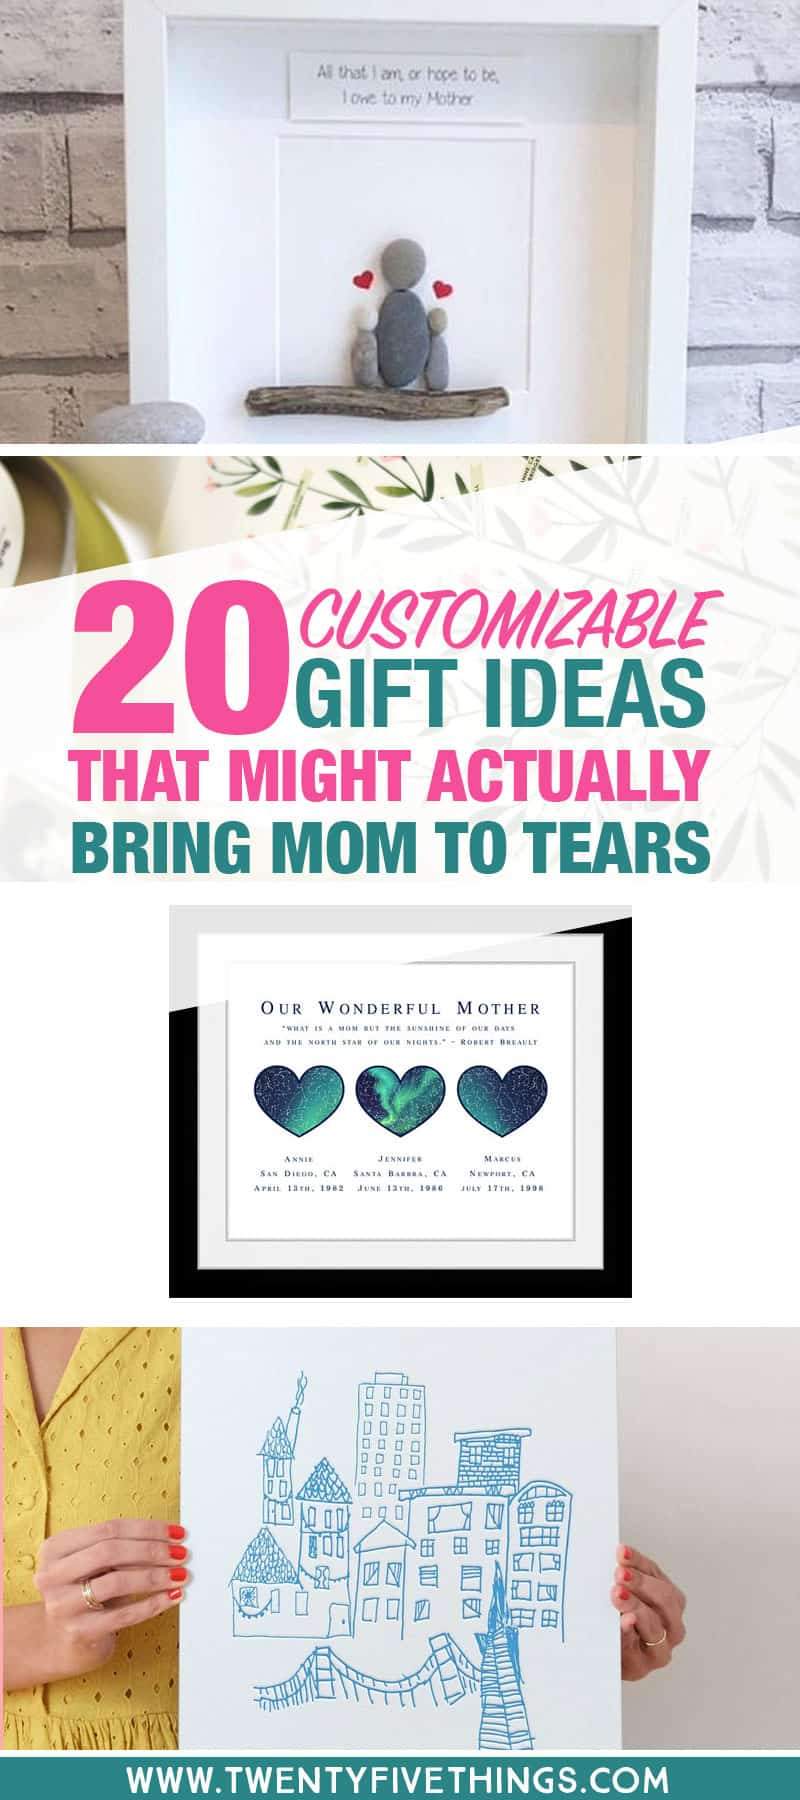 Personalized Mother's Day gift ideas. These are the special gifts Mom will love and cherish for years. Check out the custom gift ideas to find a unique gift for Mom or Grandma.